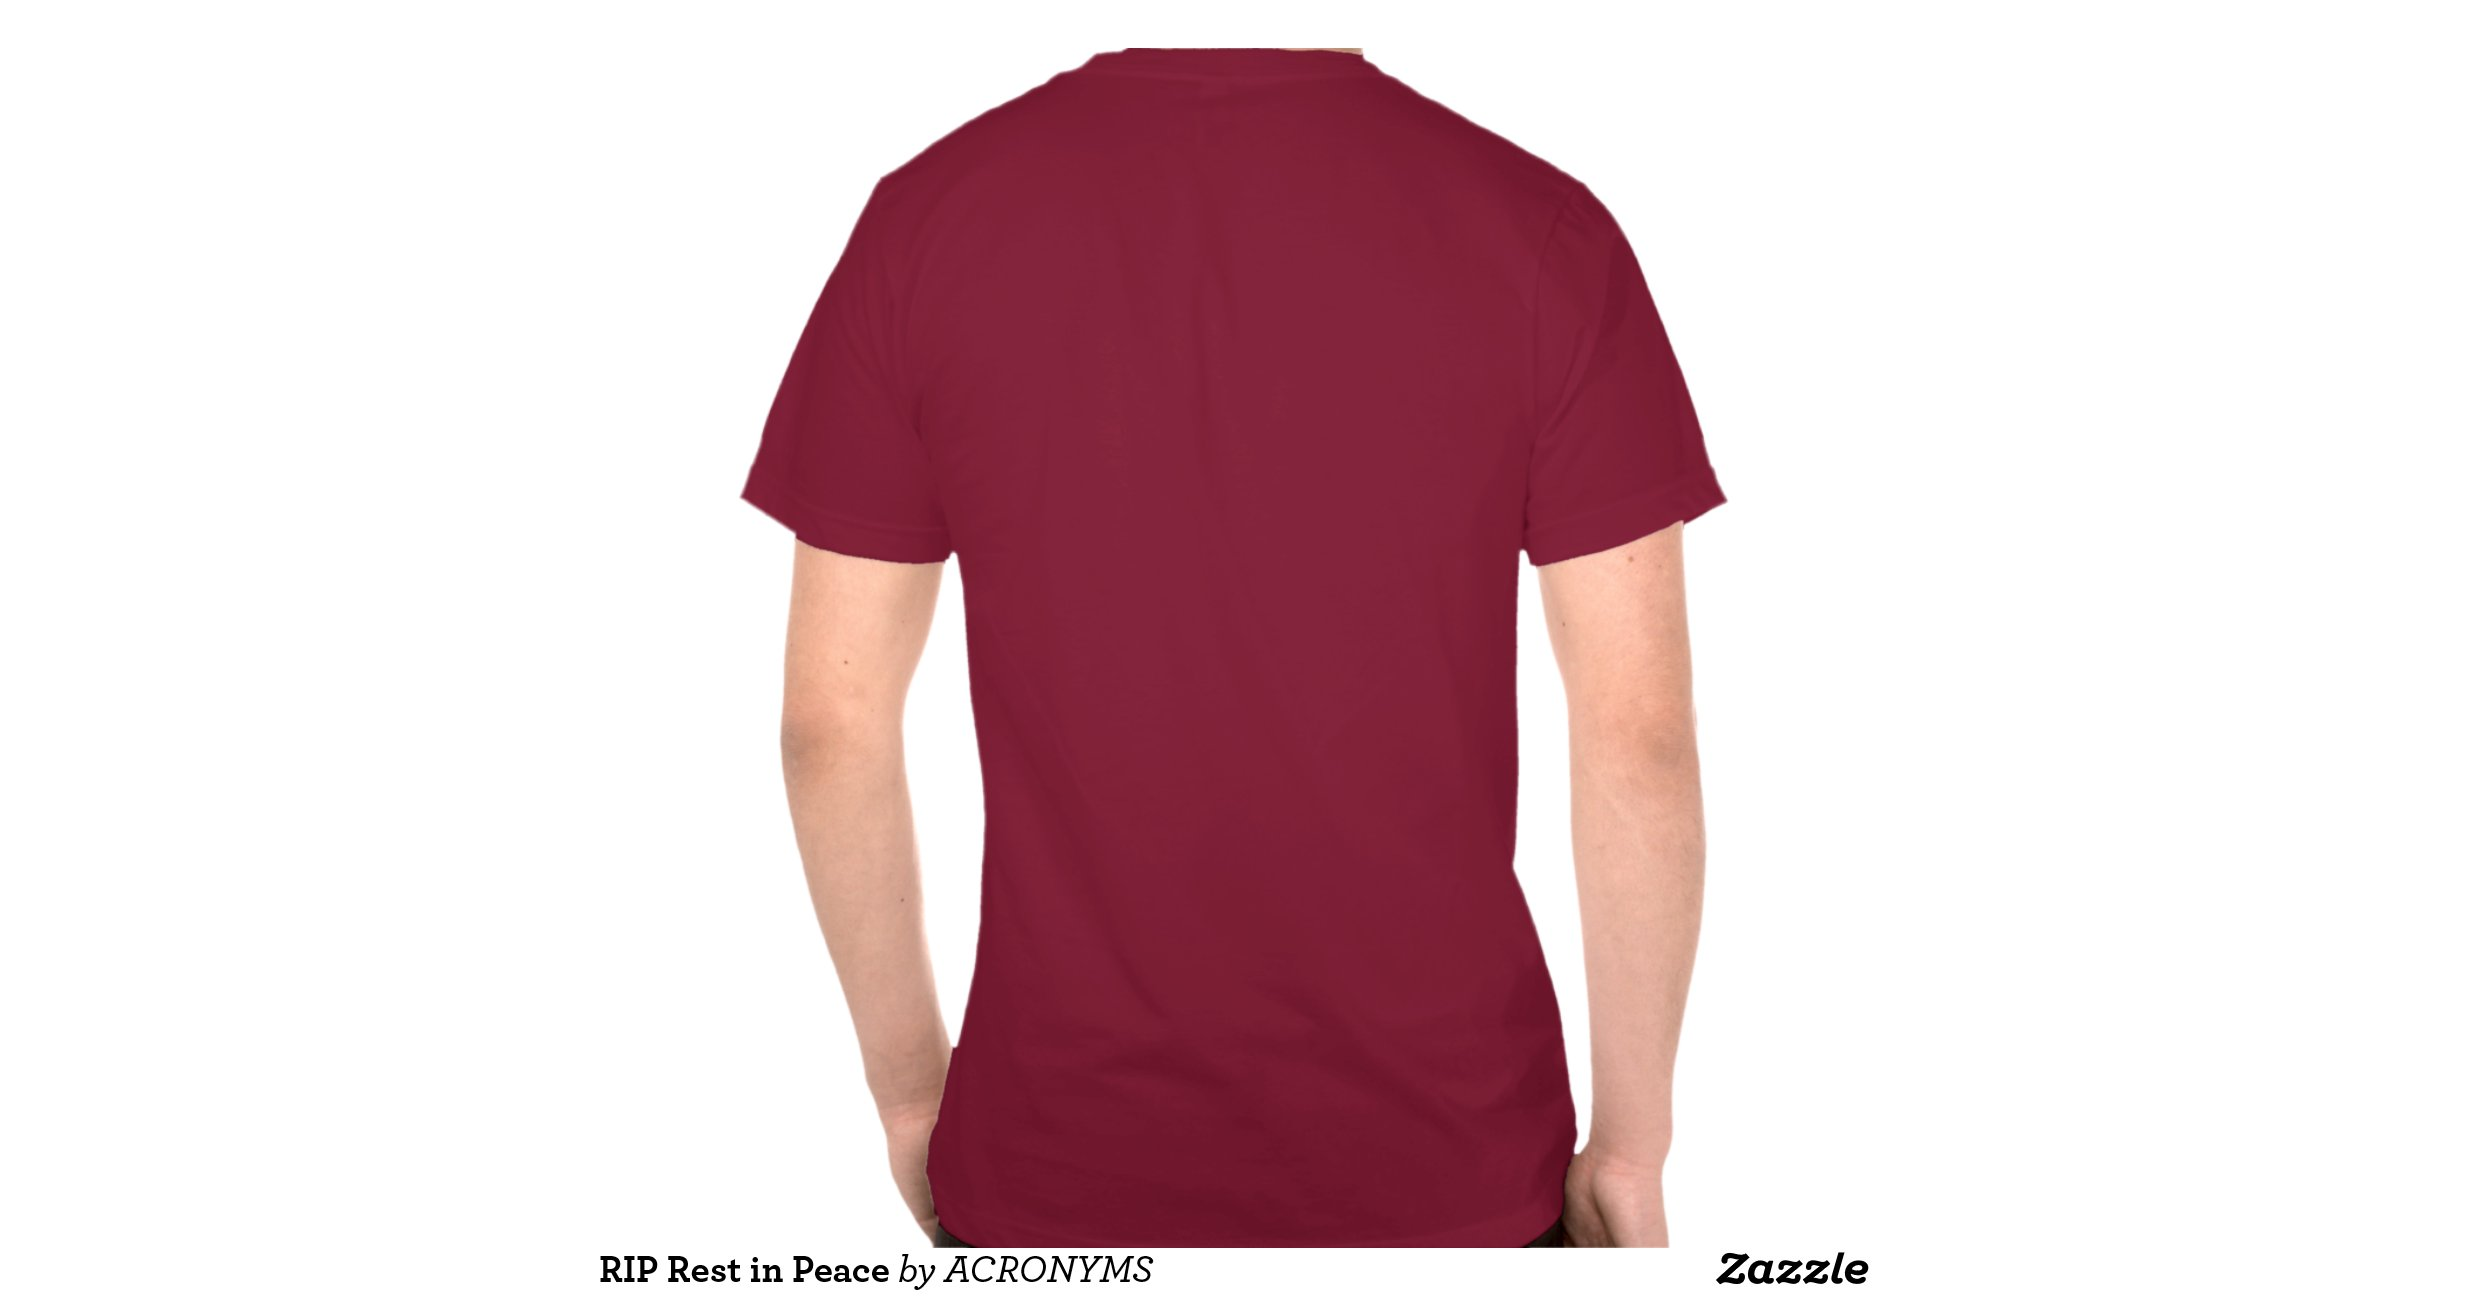 Rip Rest In Peace Tee Shirt Zazzle